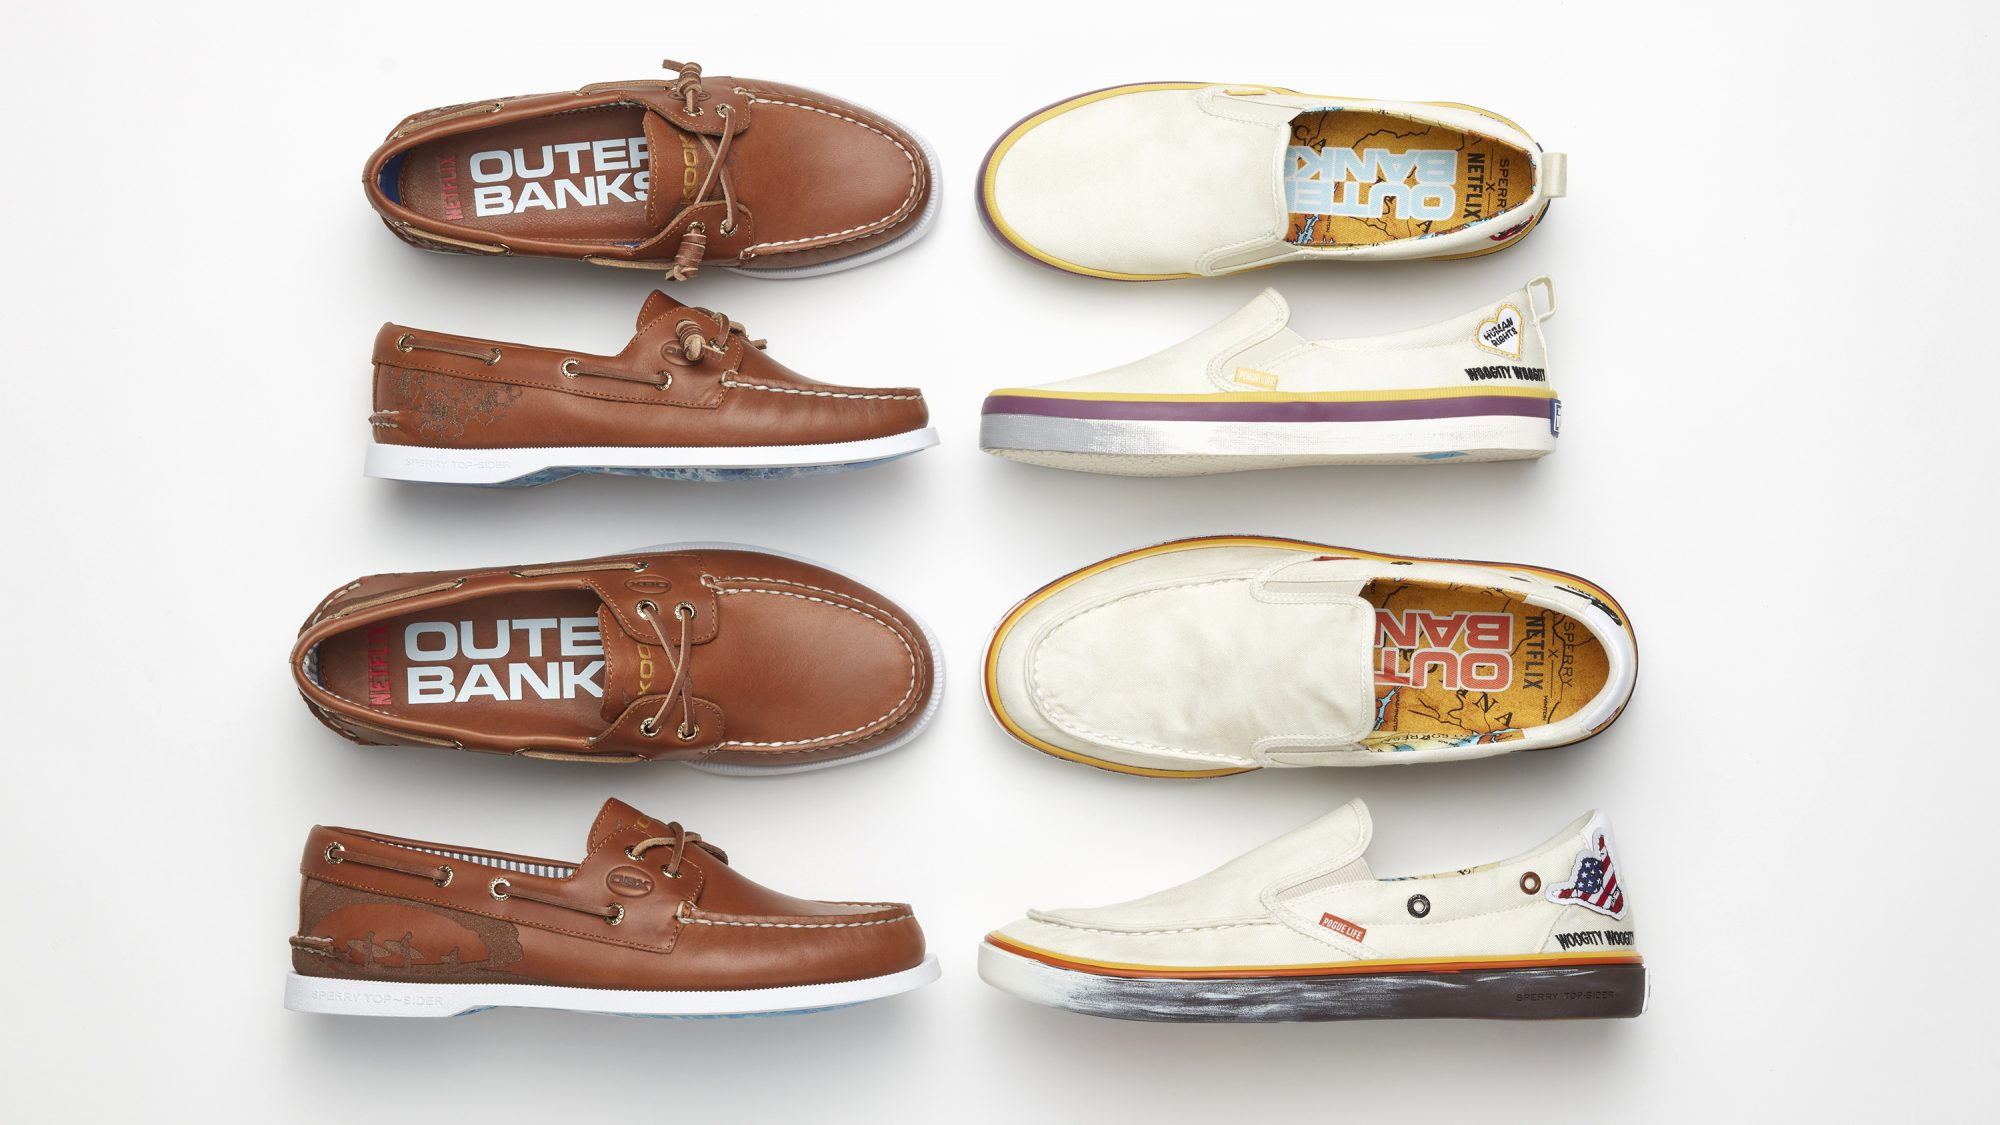 Sperry Outer Banks Collection